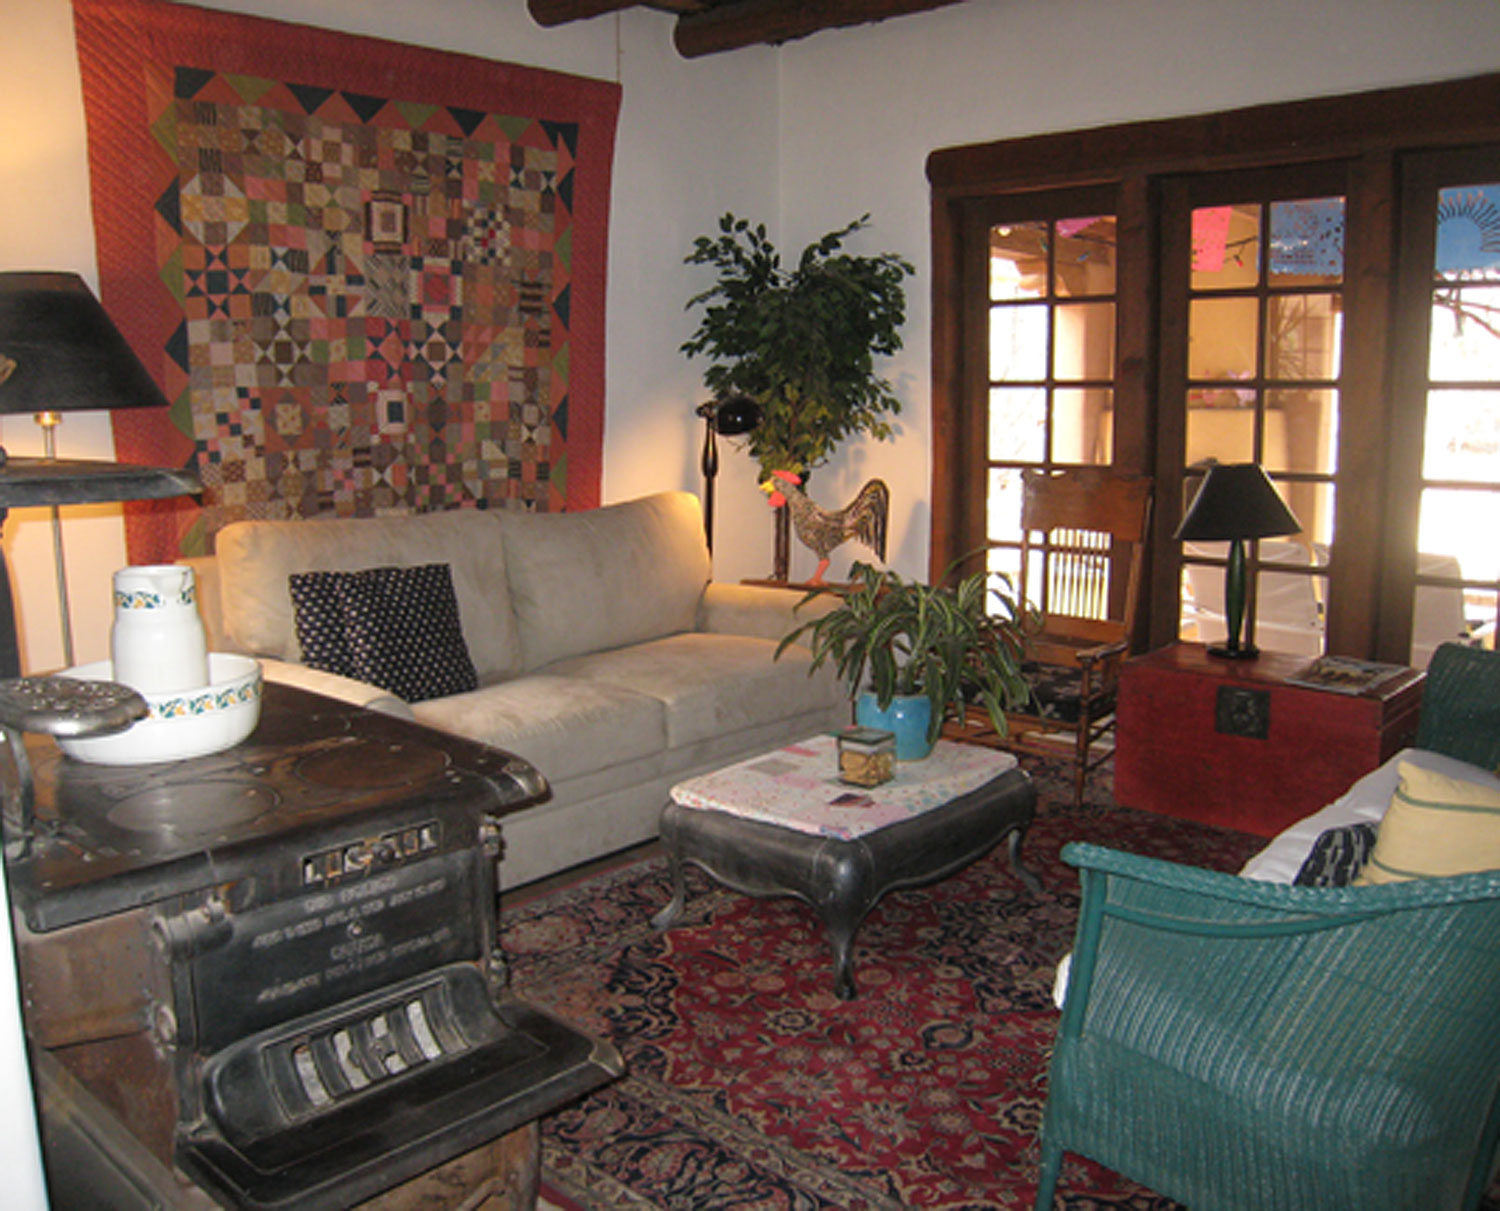 Living Room of the B&B suite